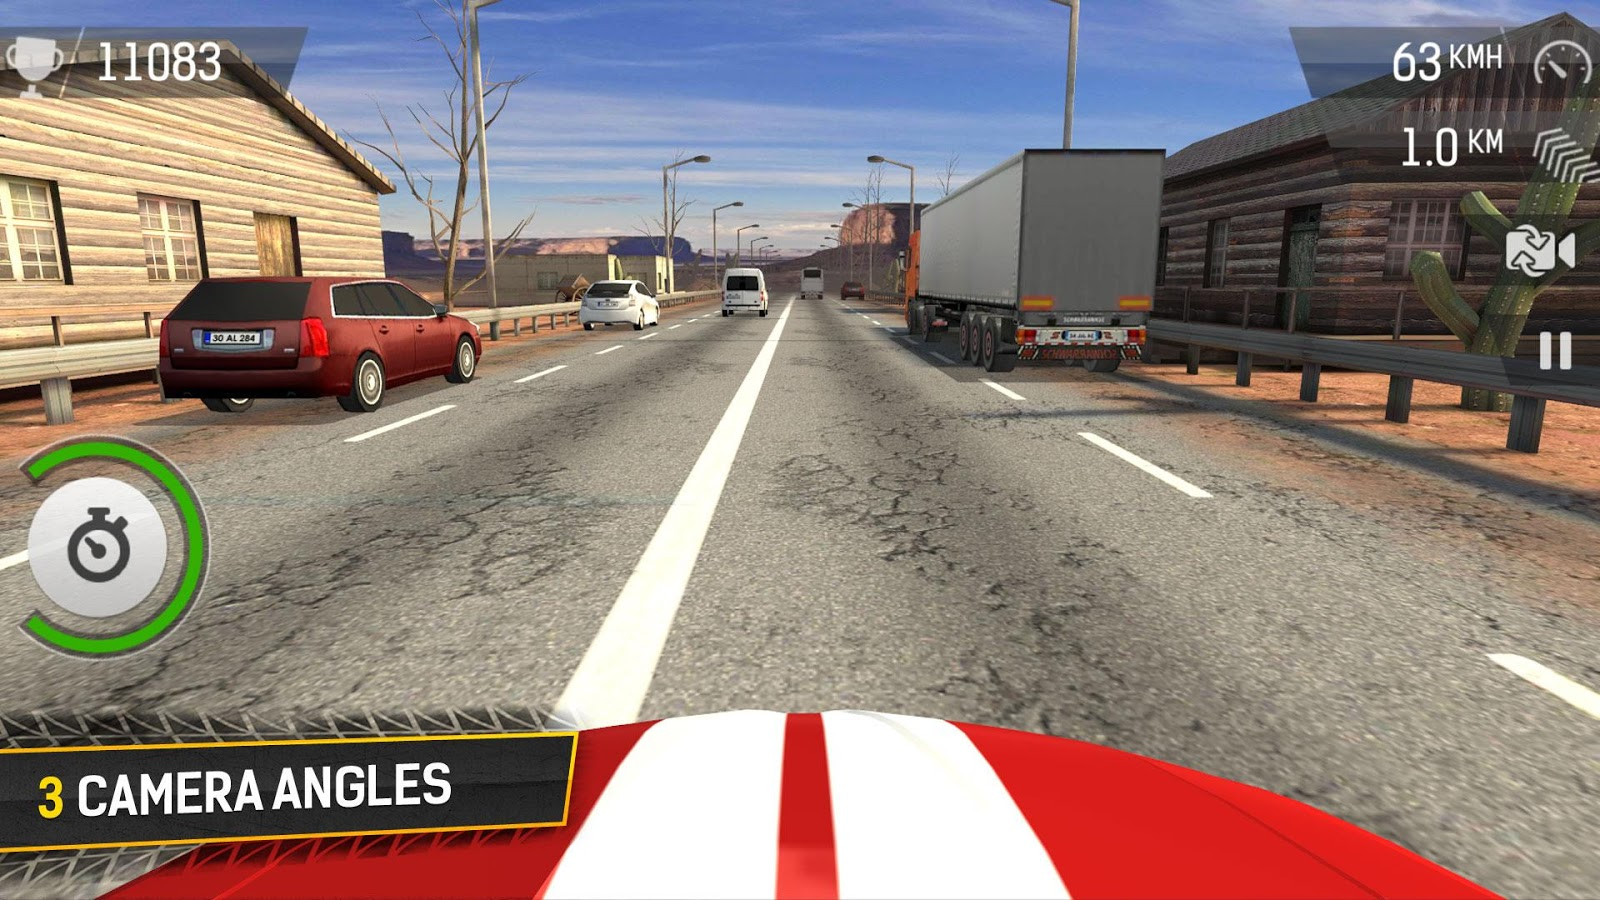 Racing Fever v1.5.7 .apk File